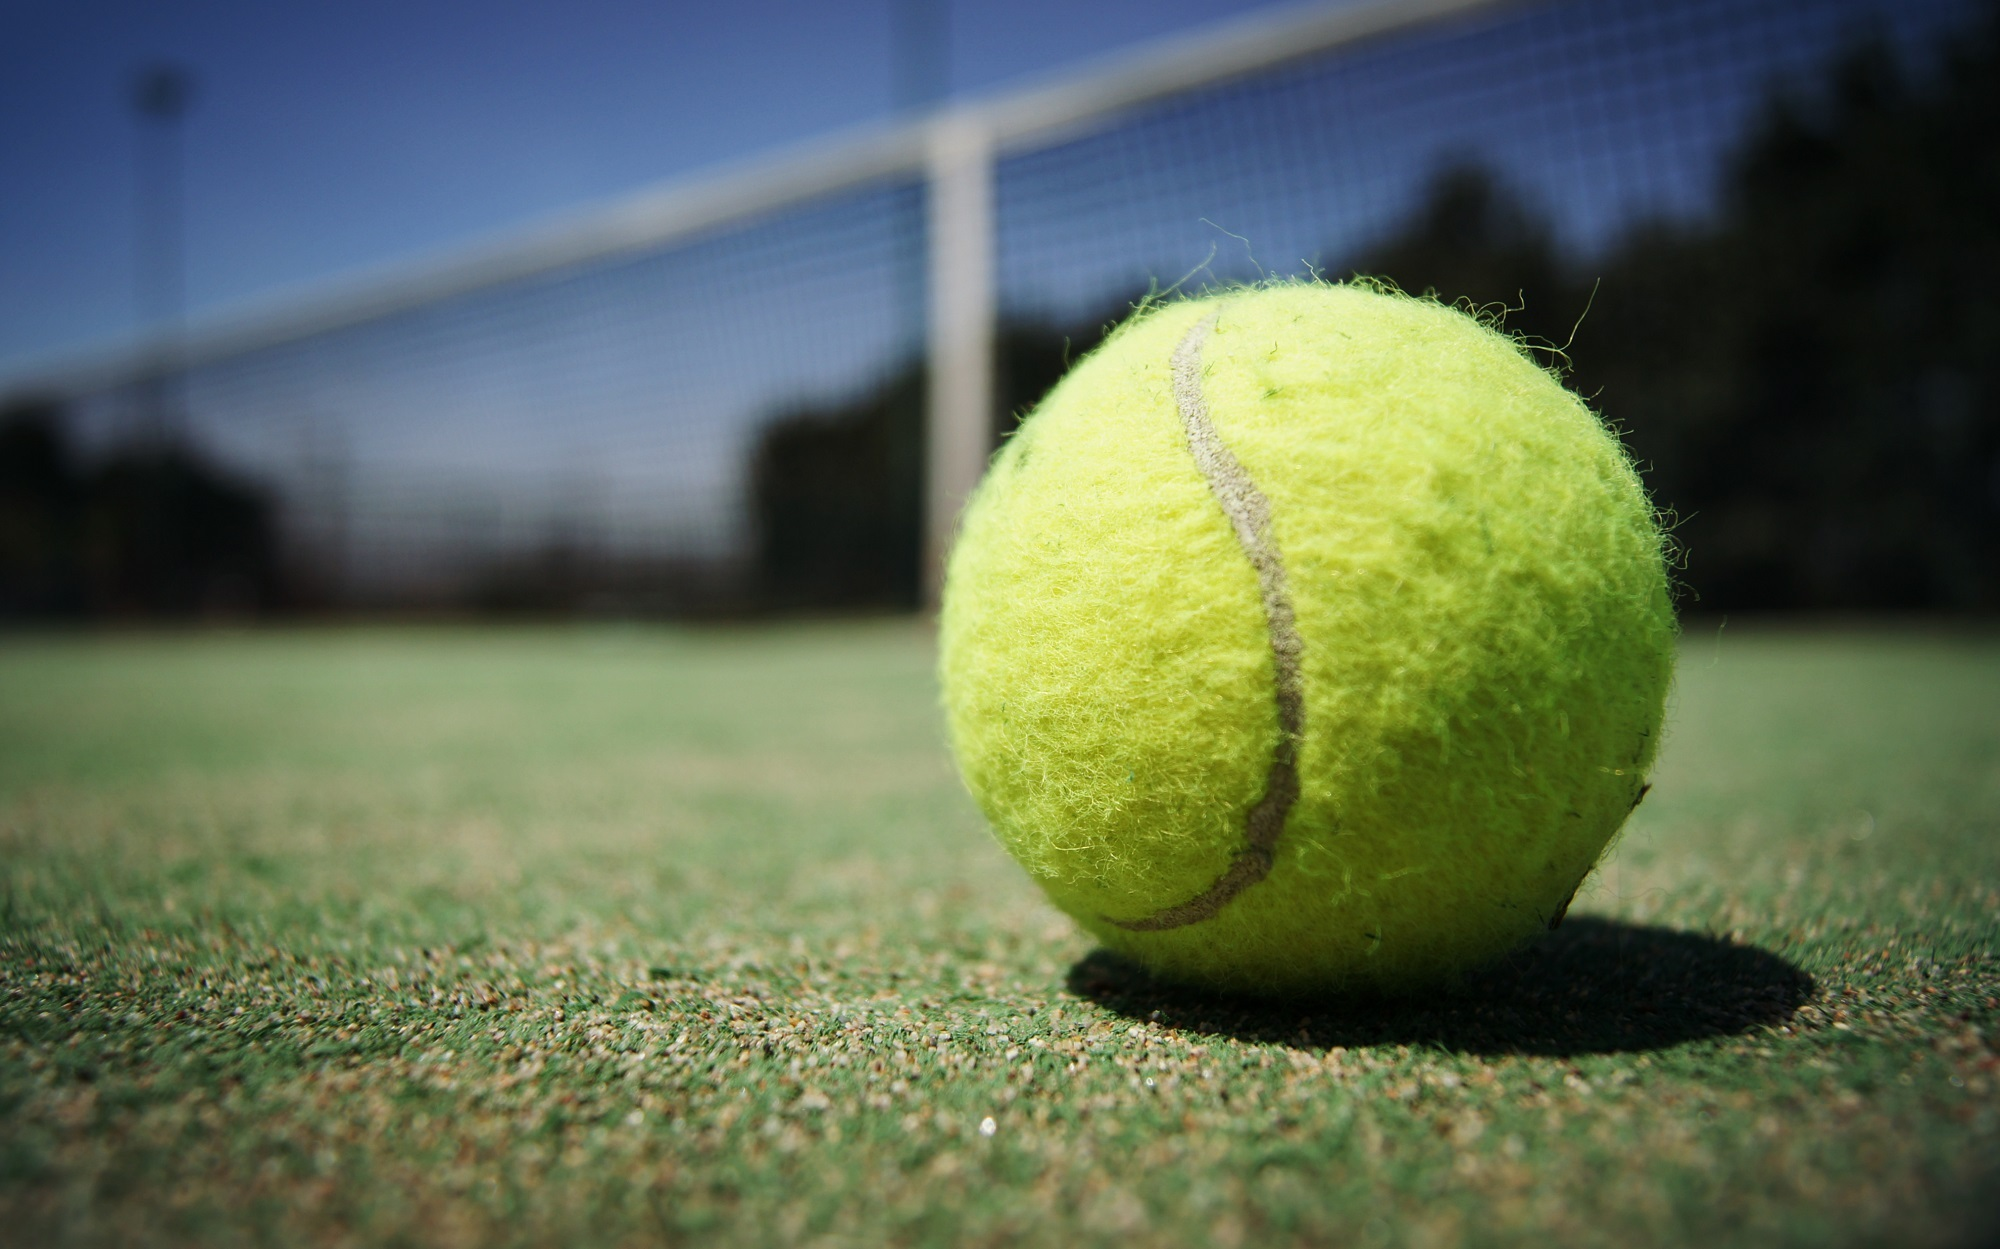 The Wimbledon Lawn Tennis Championships 2020 - All England Lawn Tennis Club, LondonMonday 29 June to Sunday 12 July 2020